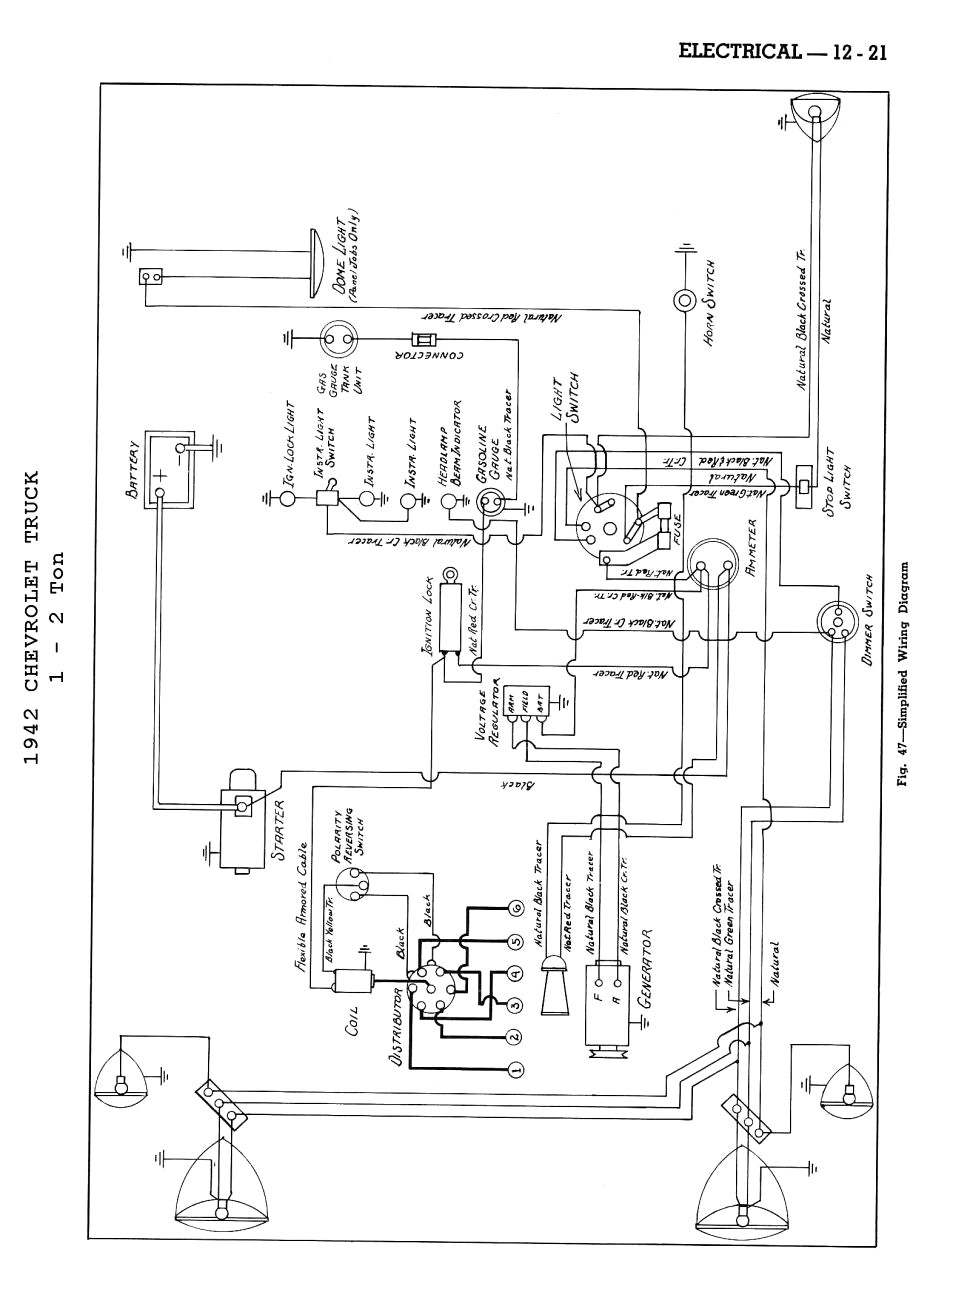 medium resolution of duo therm wiring diagram wiring diagrams suburban rv furnace coleman mach air outstanding duo therm